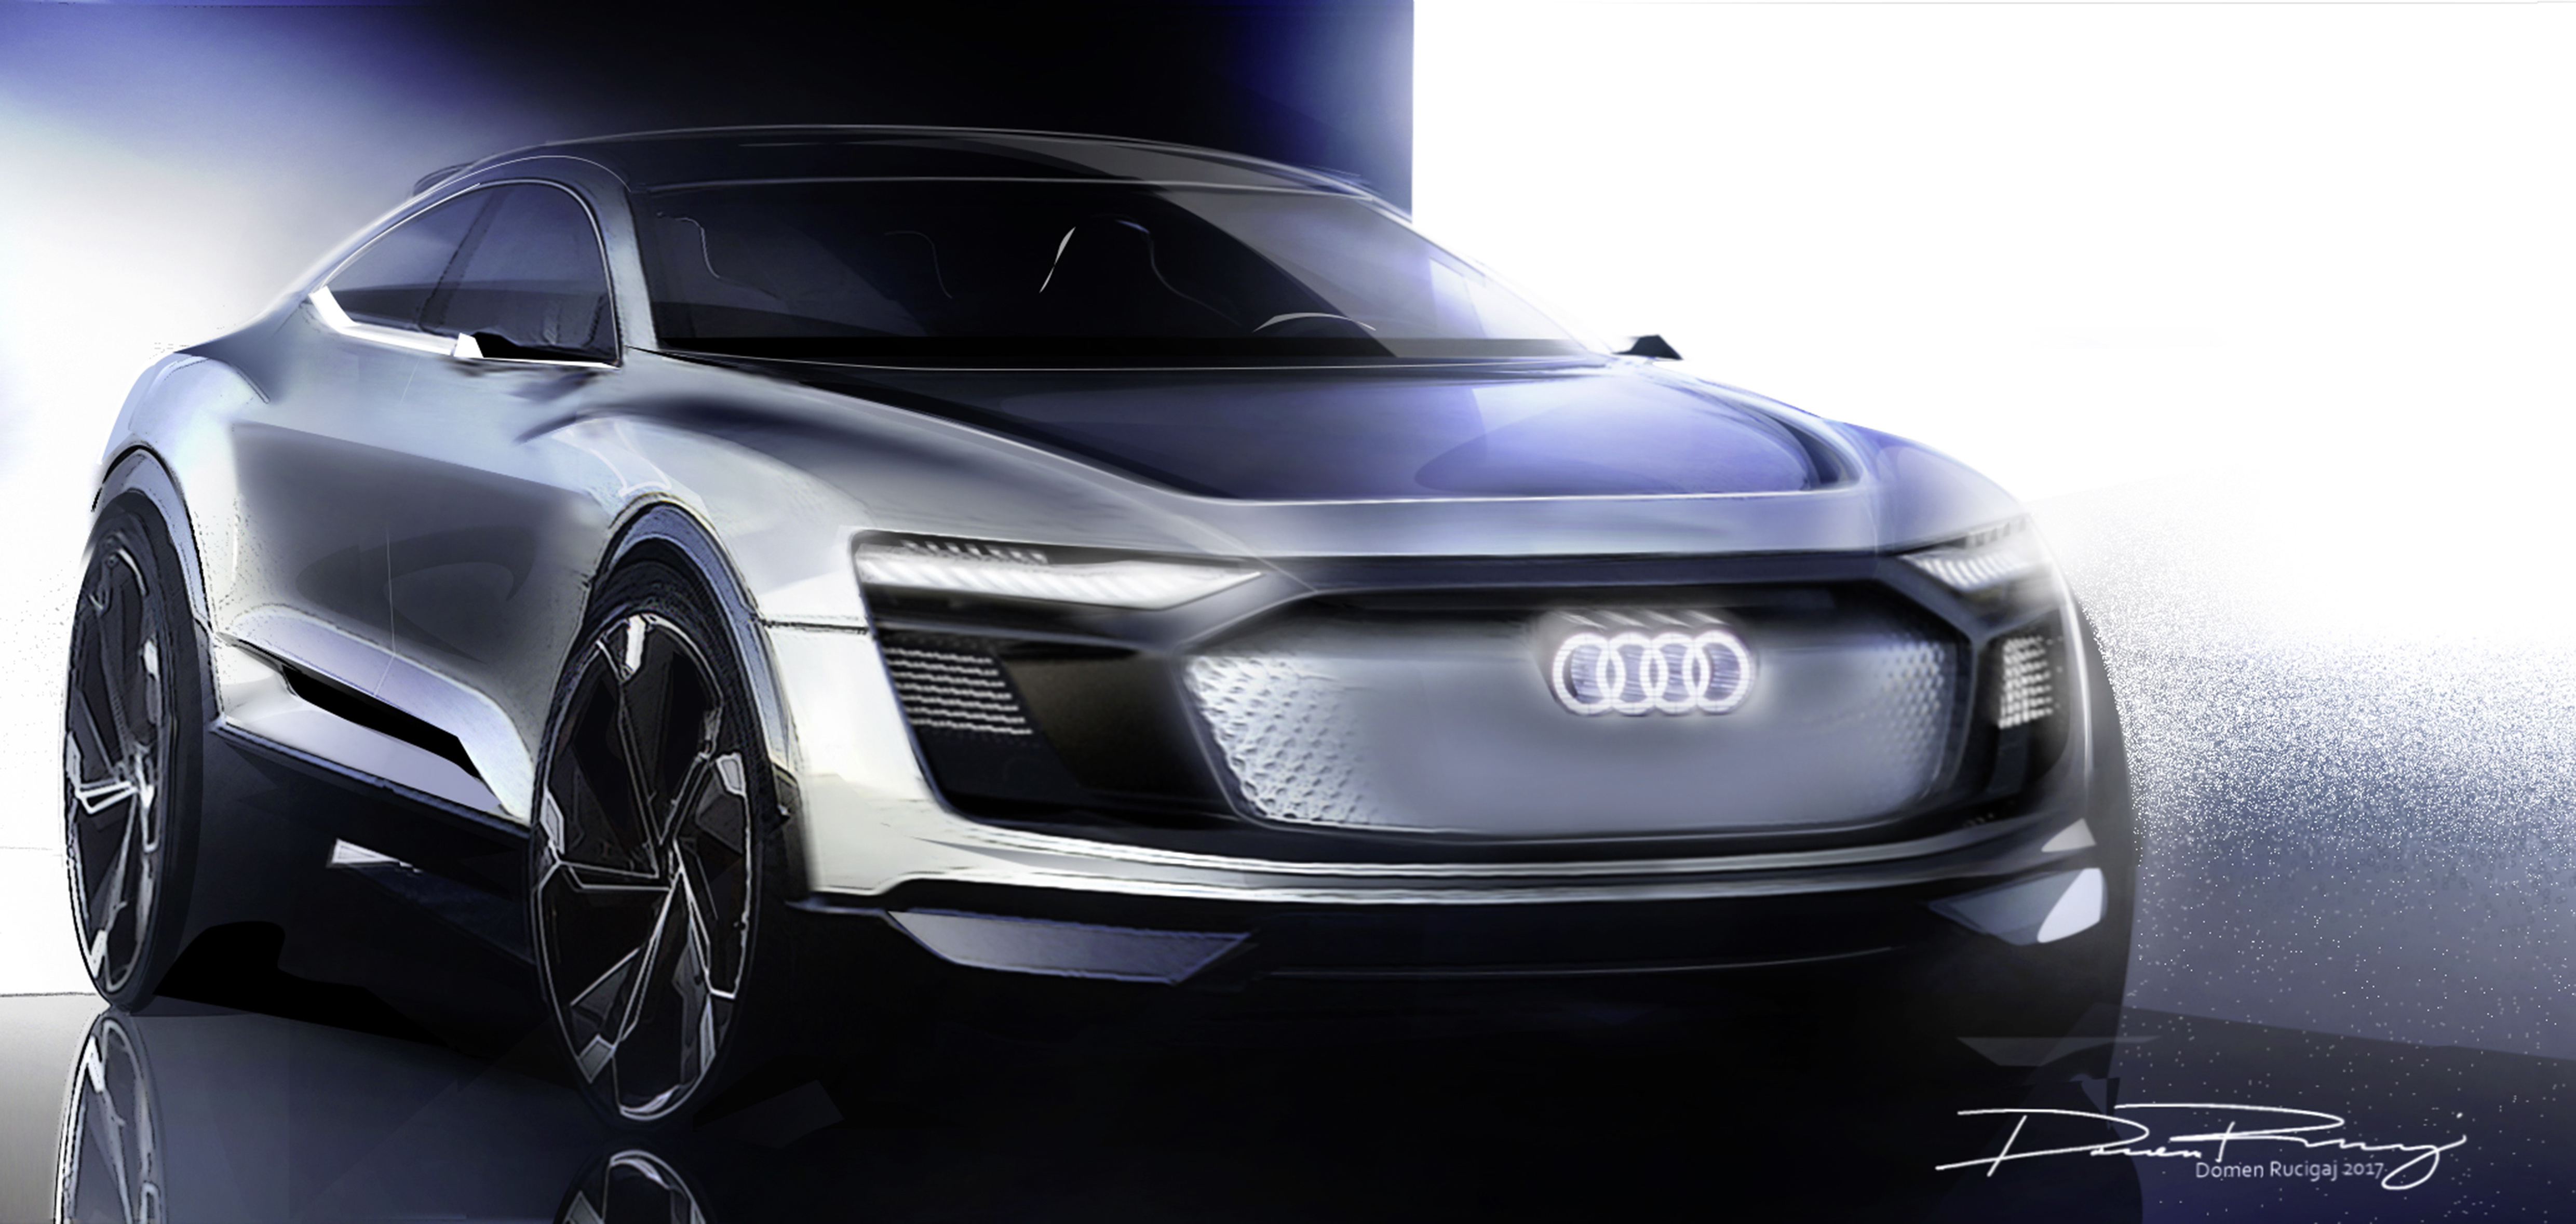 Audis new electric car concept is pretty obviously from the